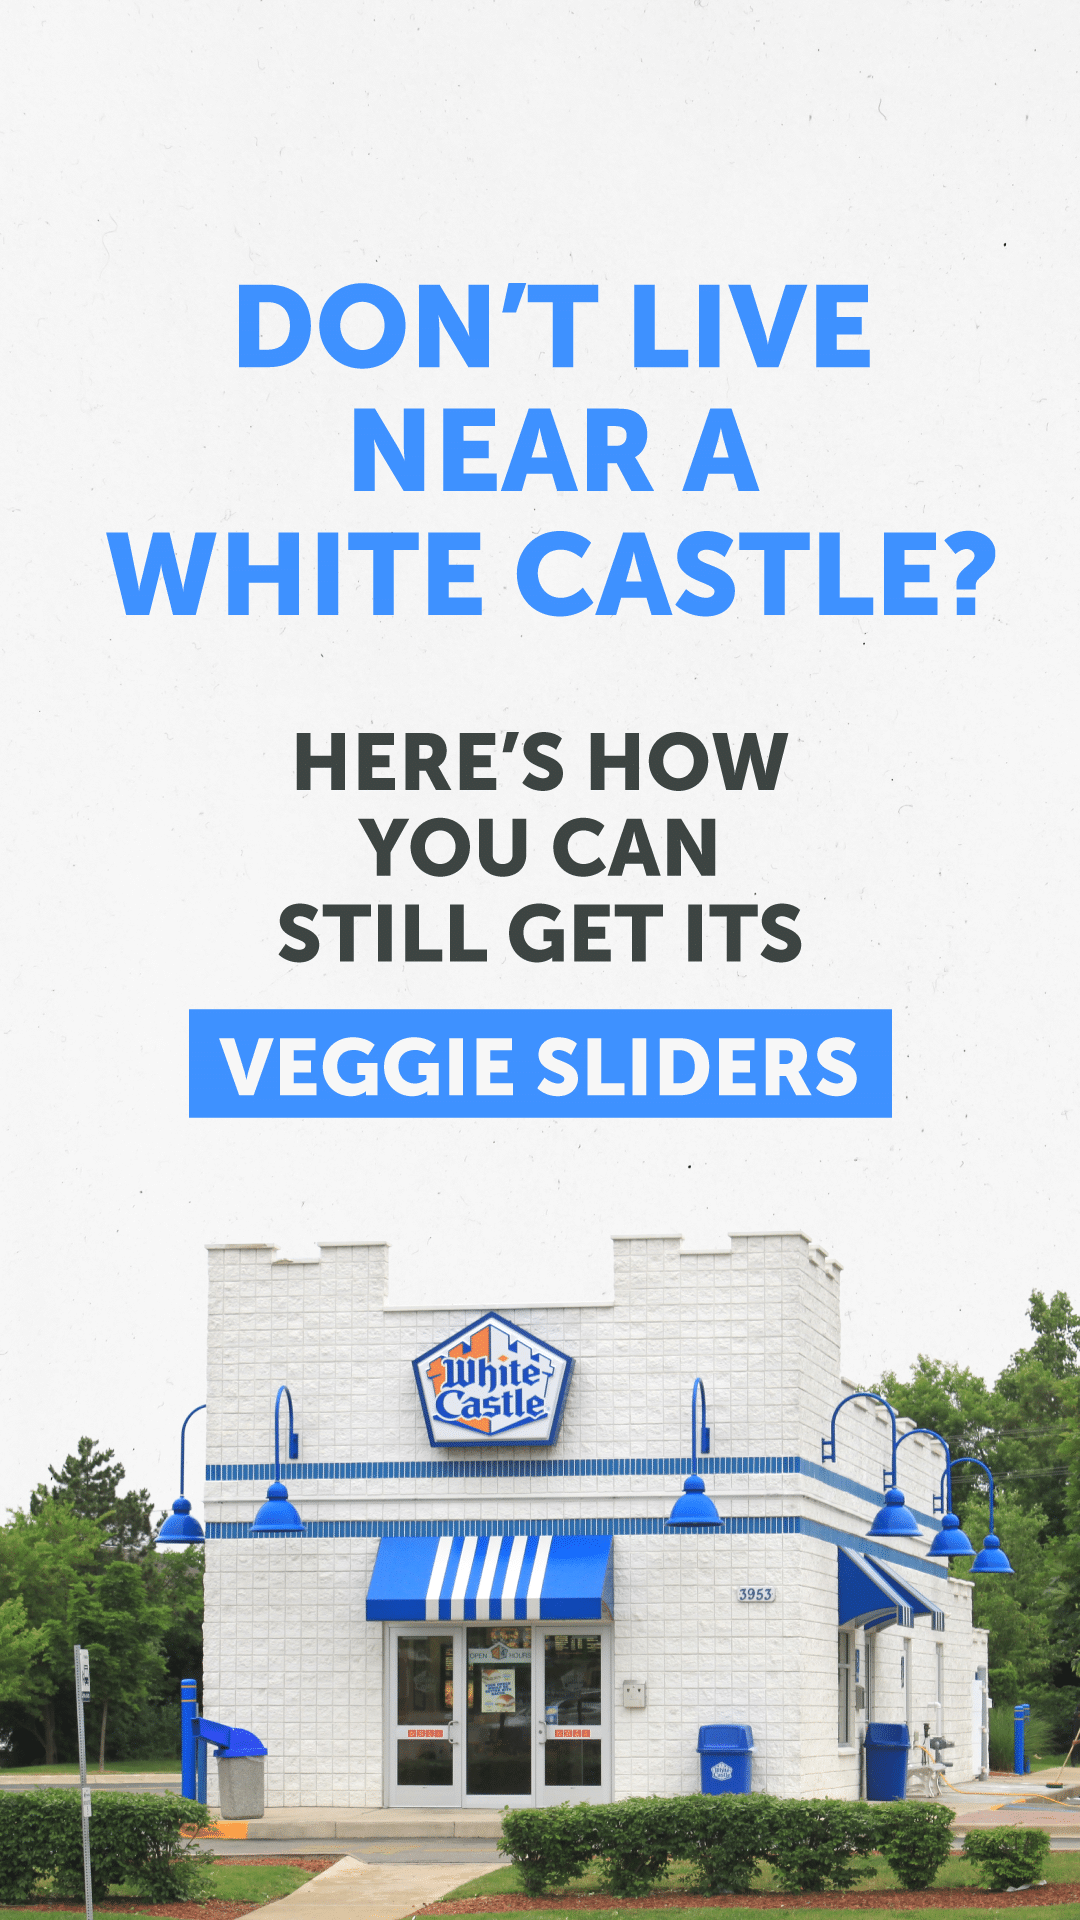 Don't Live Near a White Castle? Here's How You Can Still Get Its Veggie Sliders